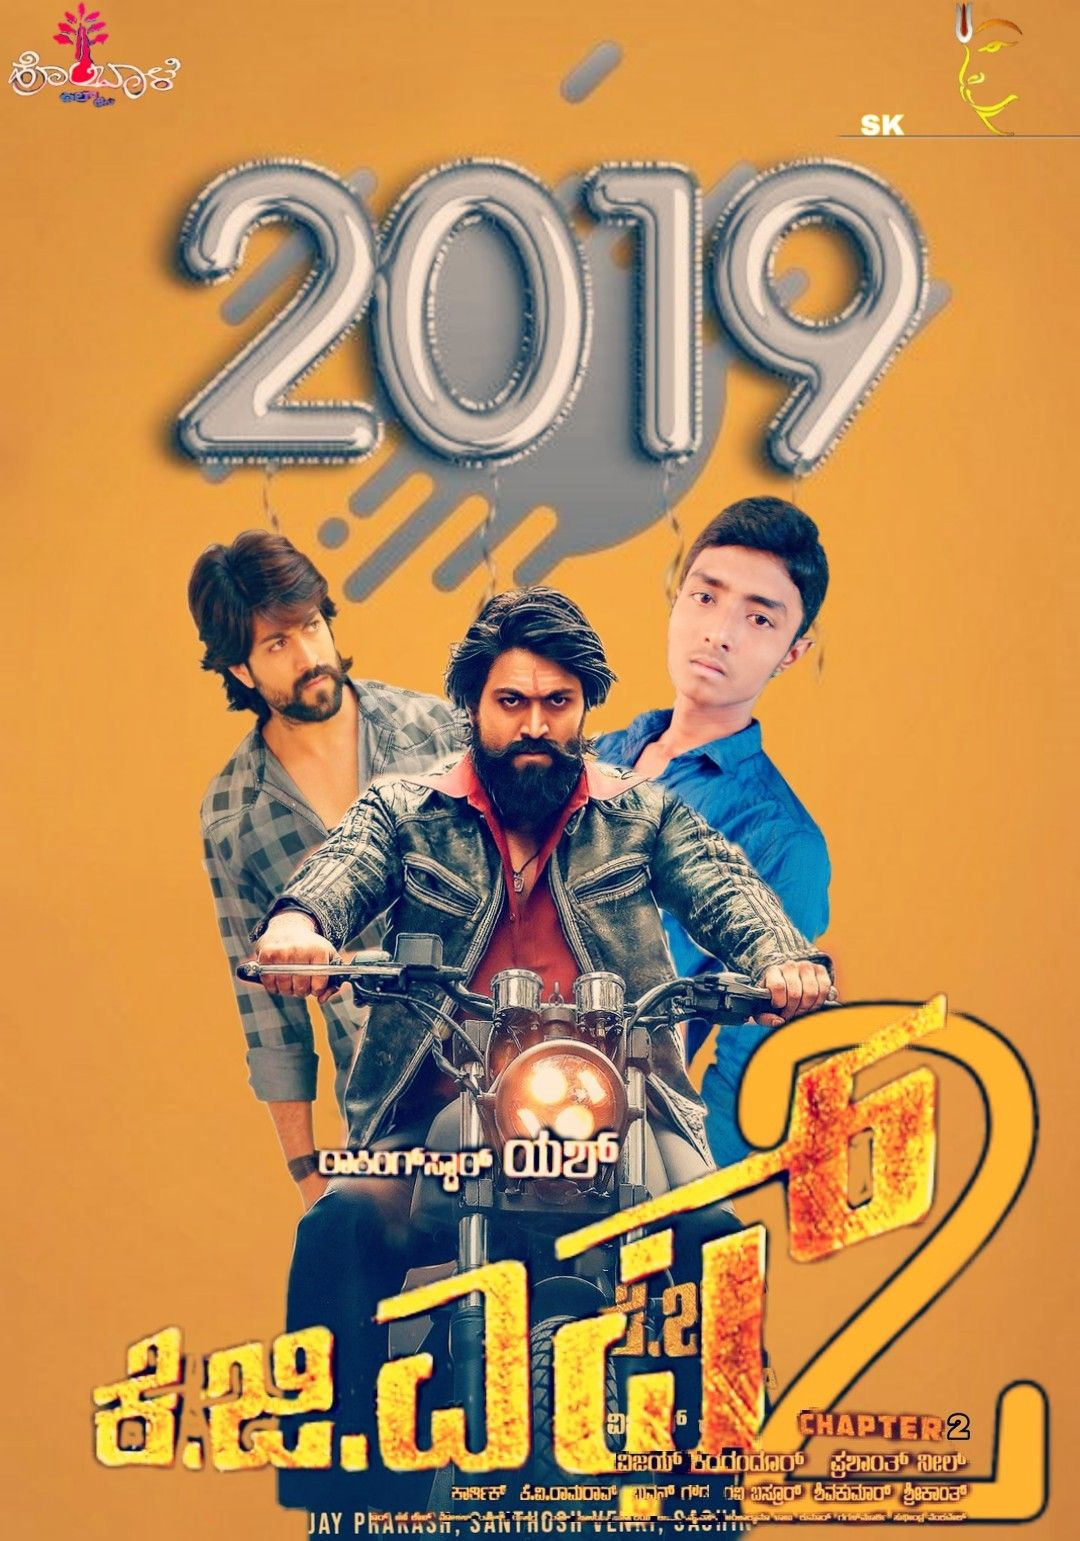 Yash KGF | Yash KGF 2 | Movie posters, Poster, Art